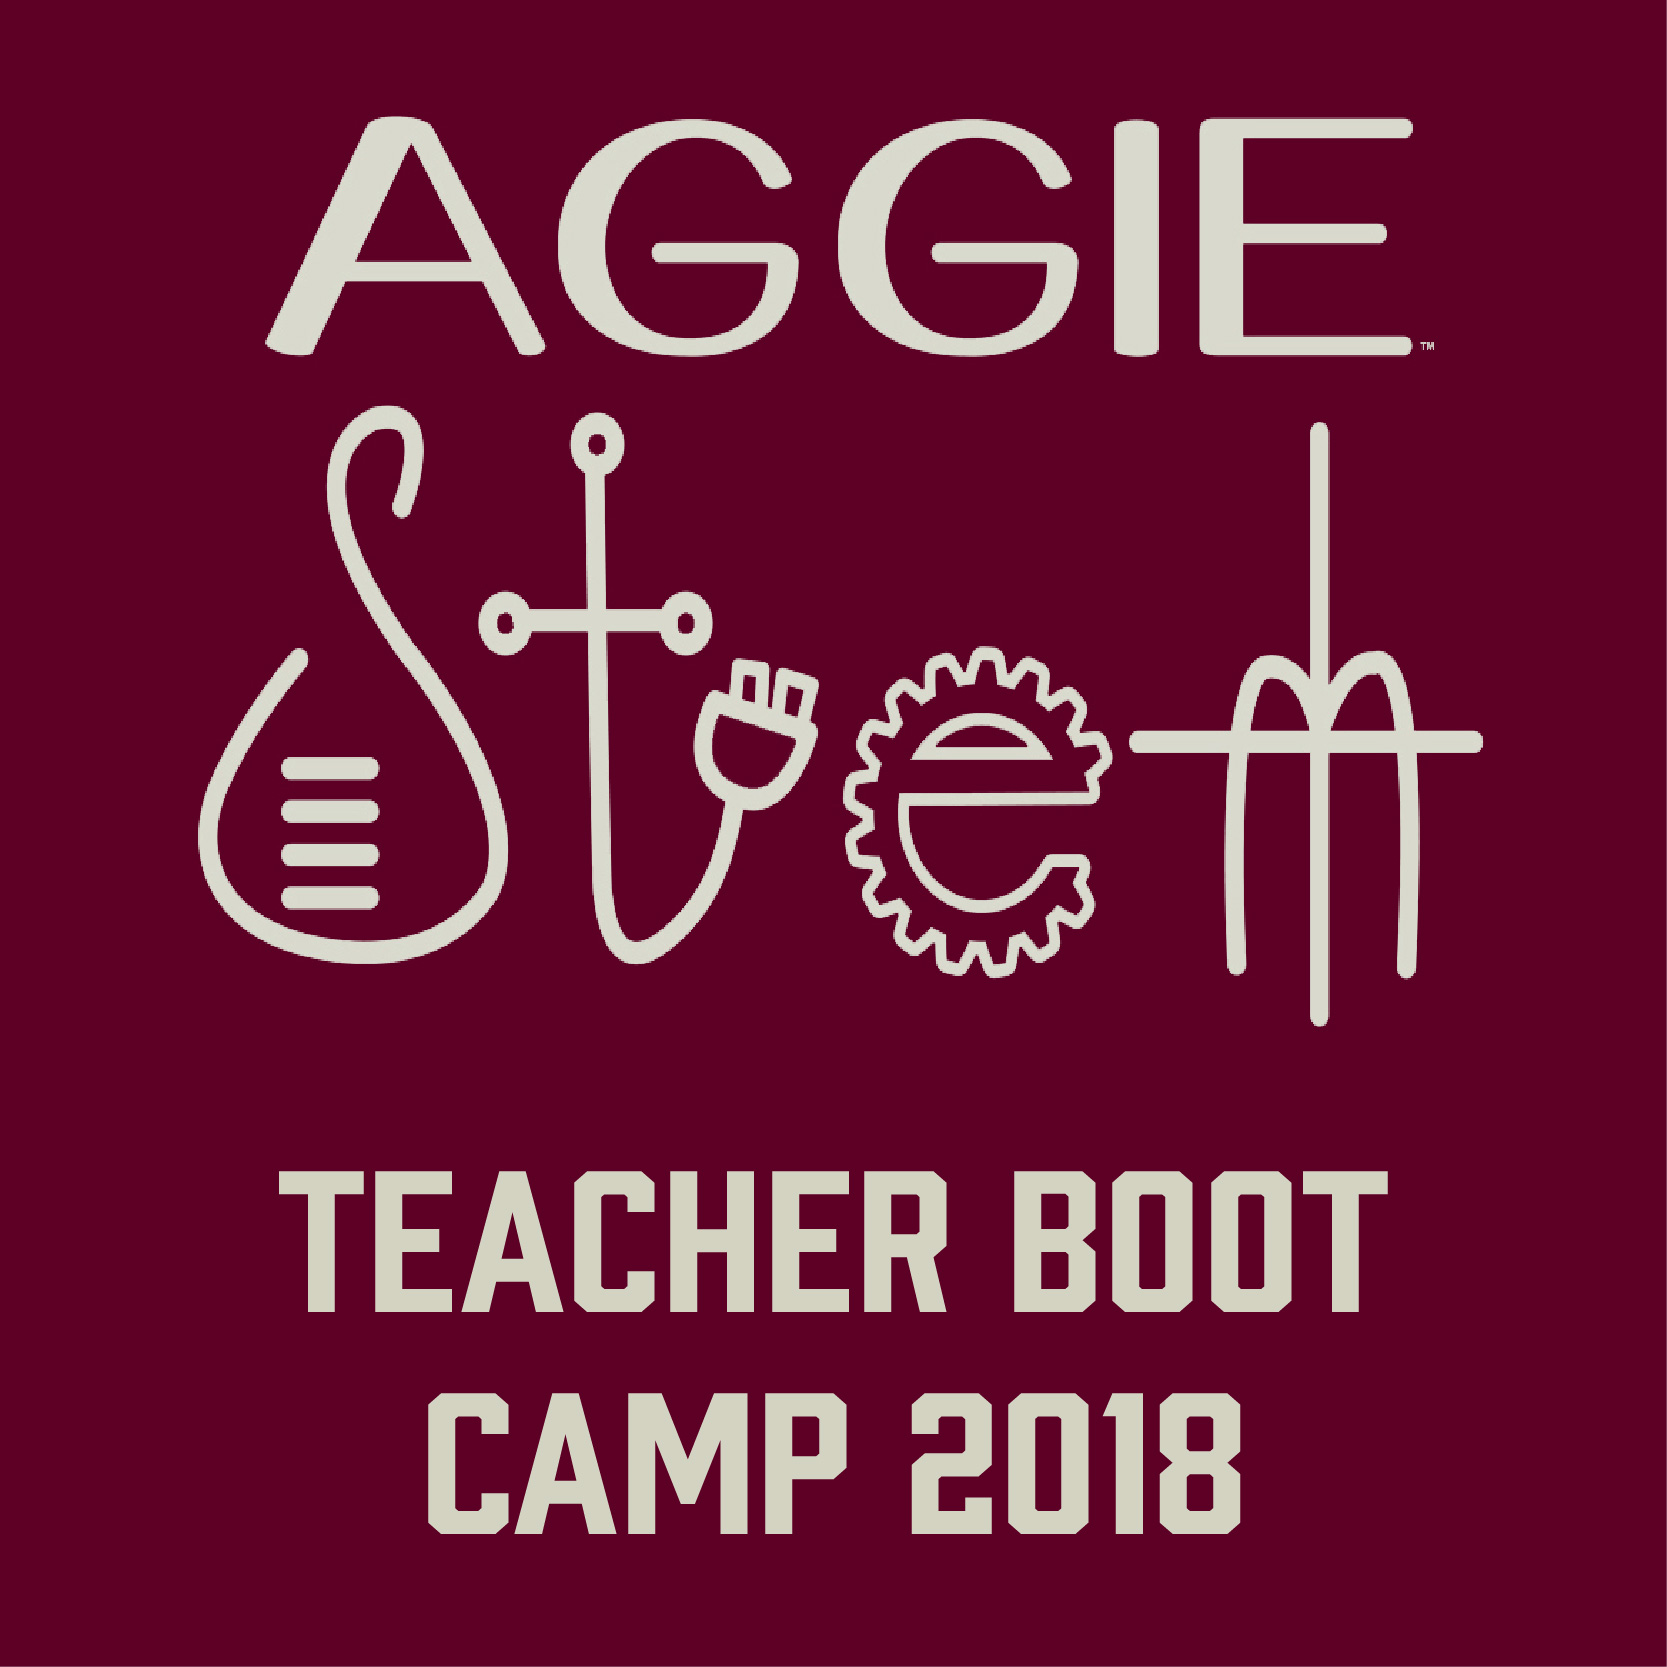 Aggie STEM Teacher Boot Camp 2018